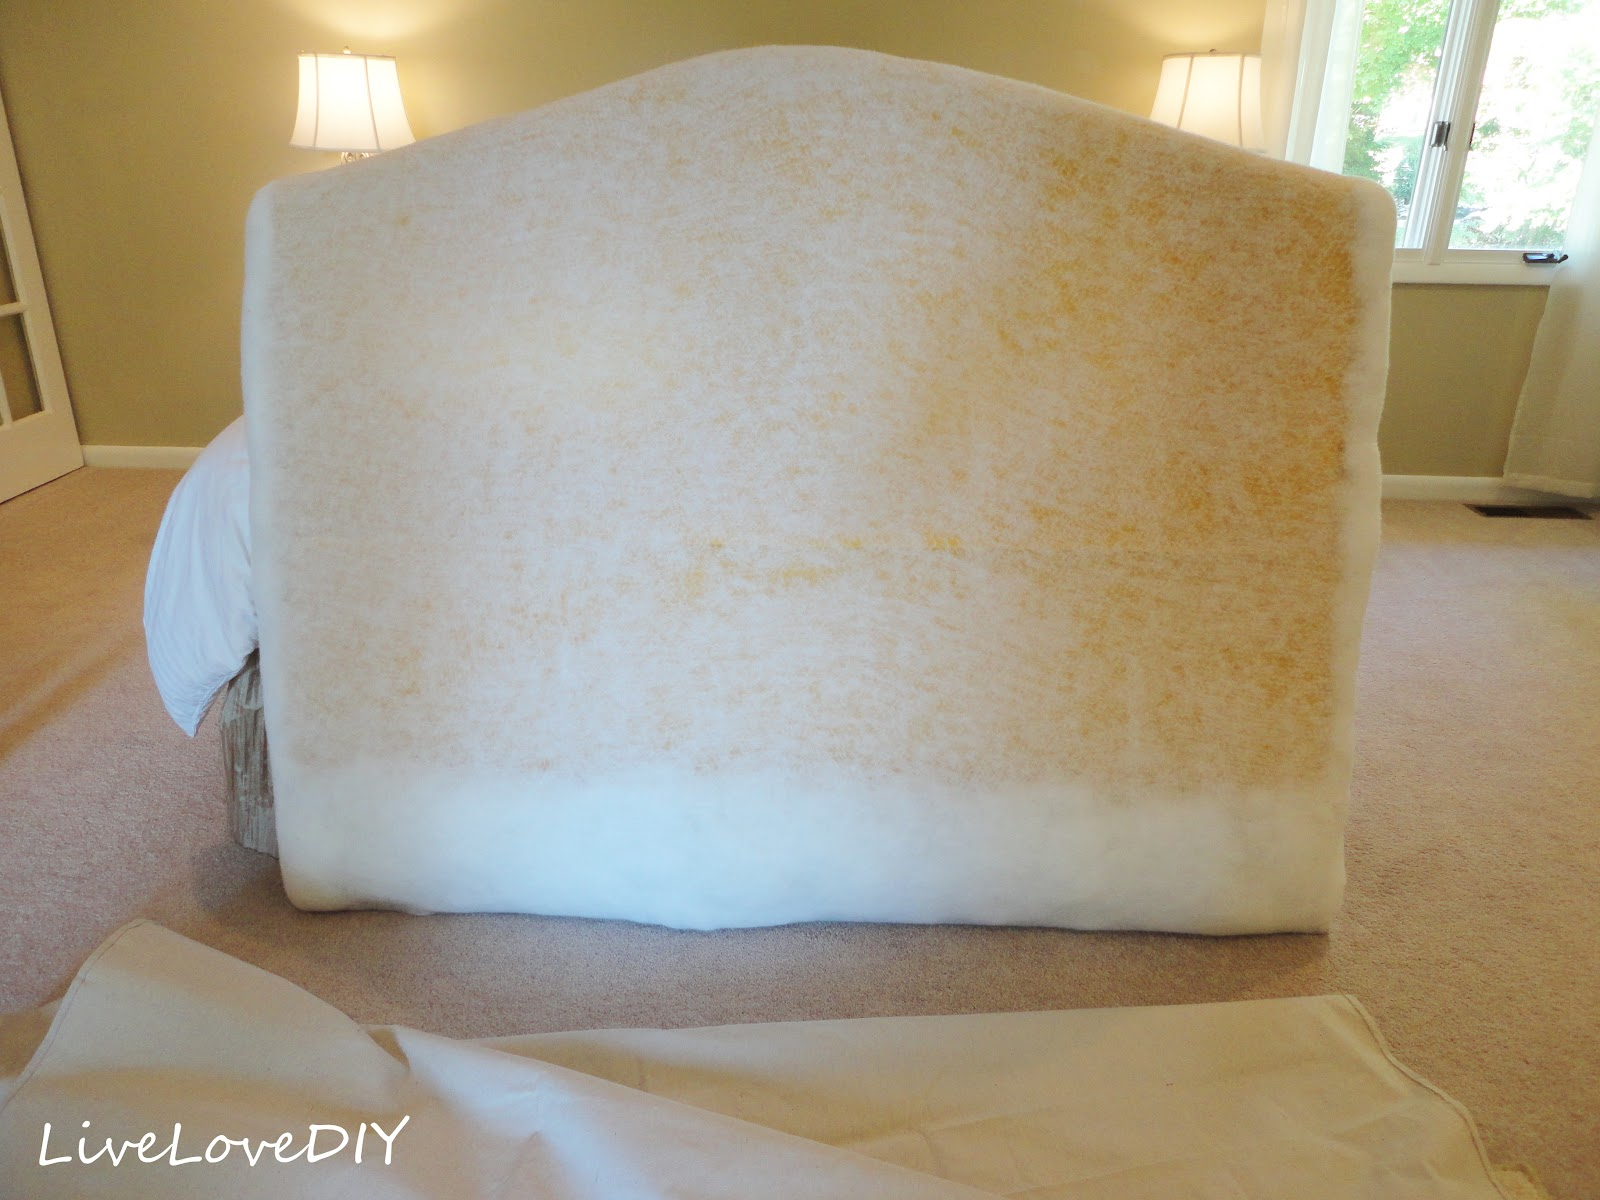 Livelovediy how to make an upholstered headboard with a Make your own headboard